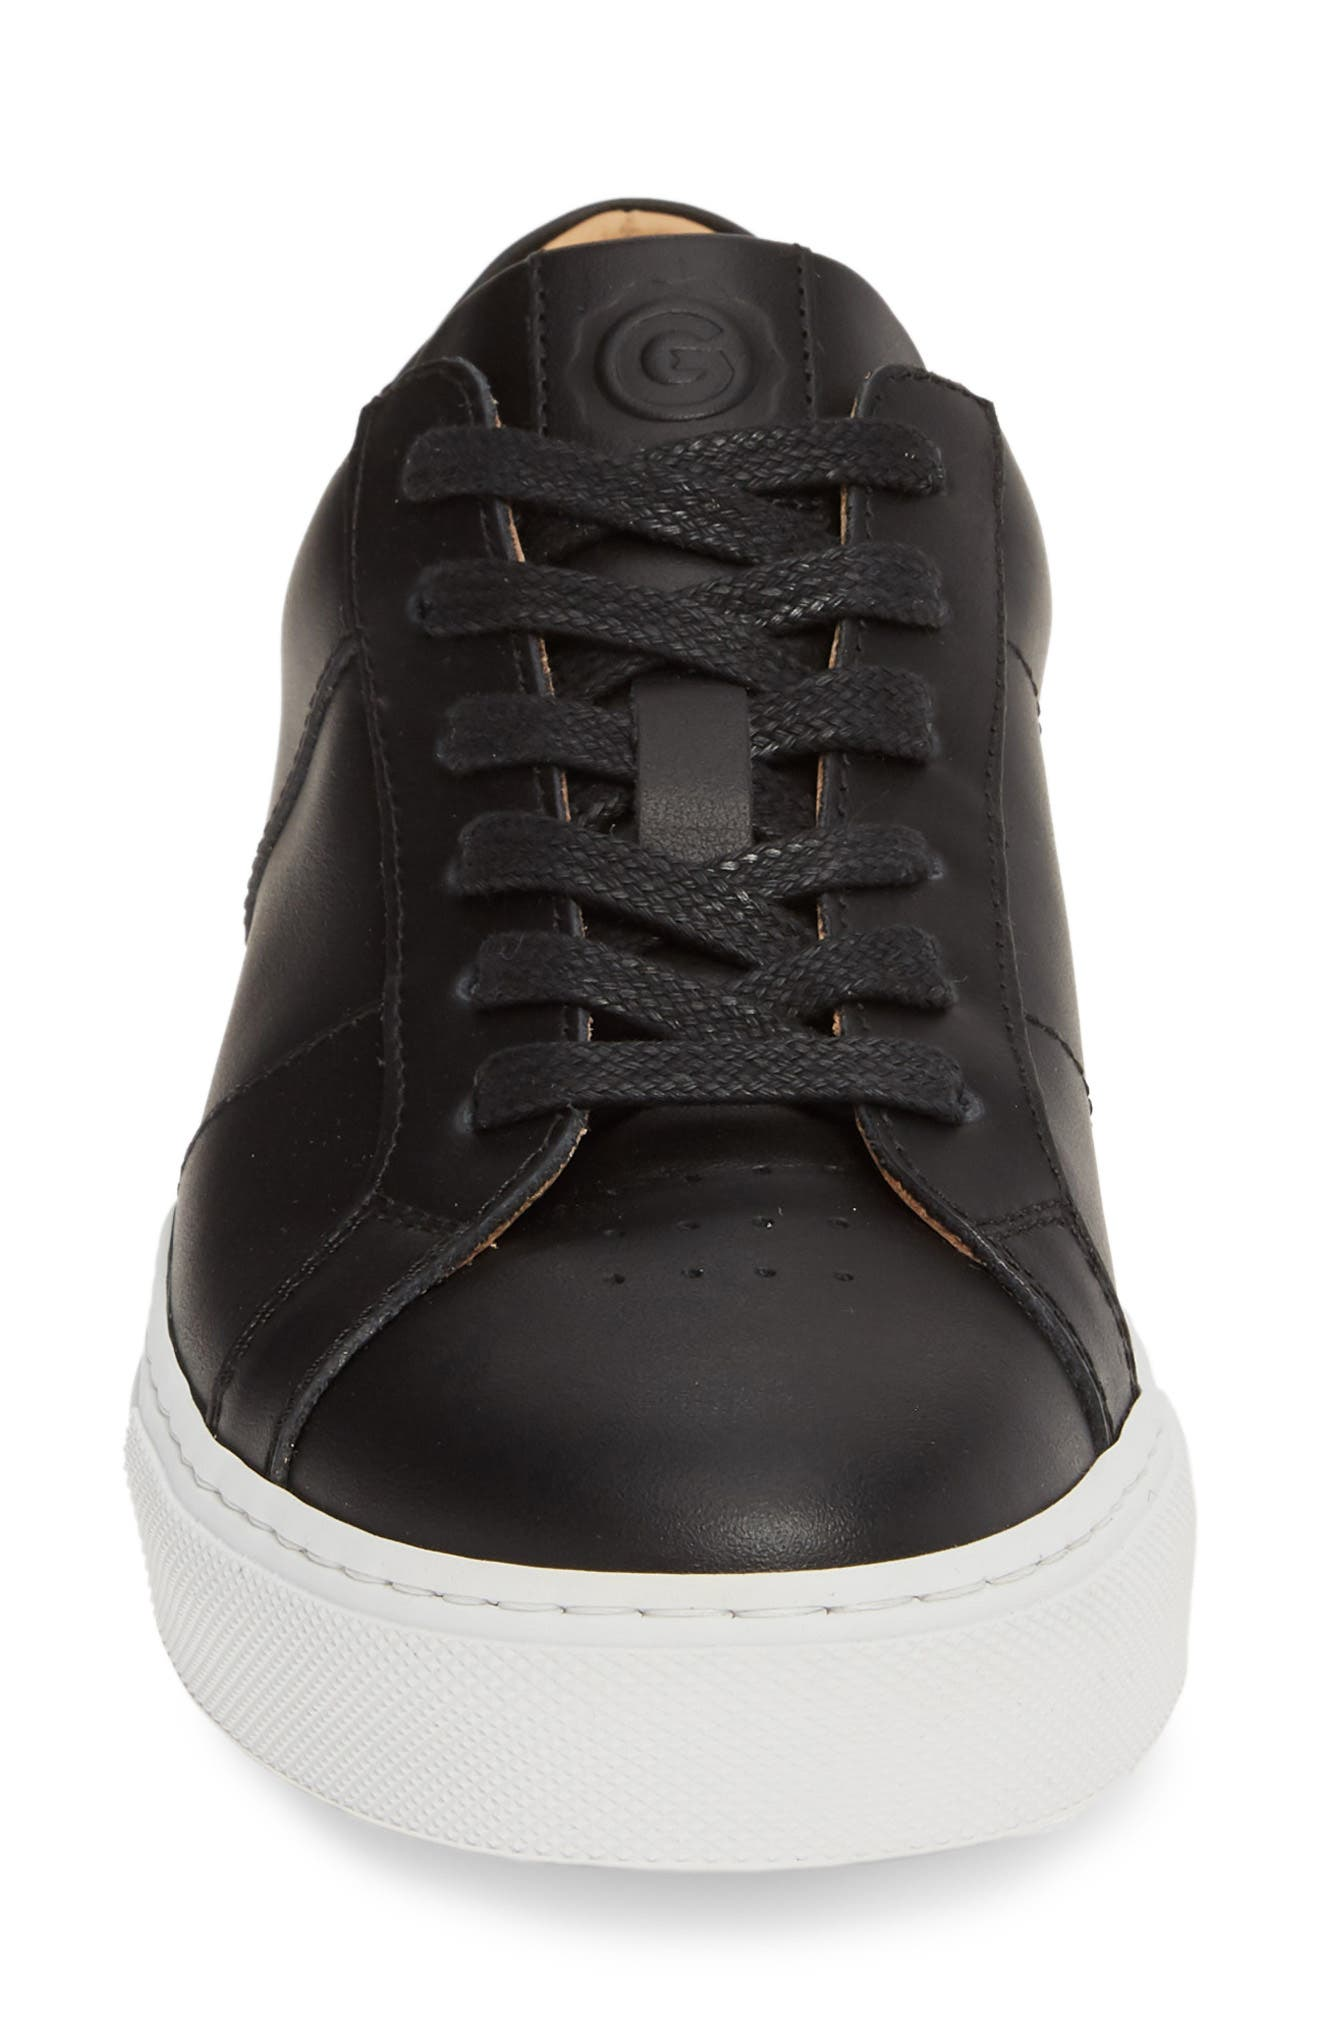 GREATS, Royale Low Top Sneaker, Alternate thumbnail 4, color, BLACK LEATHER